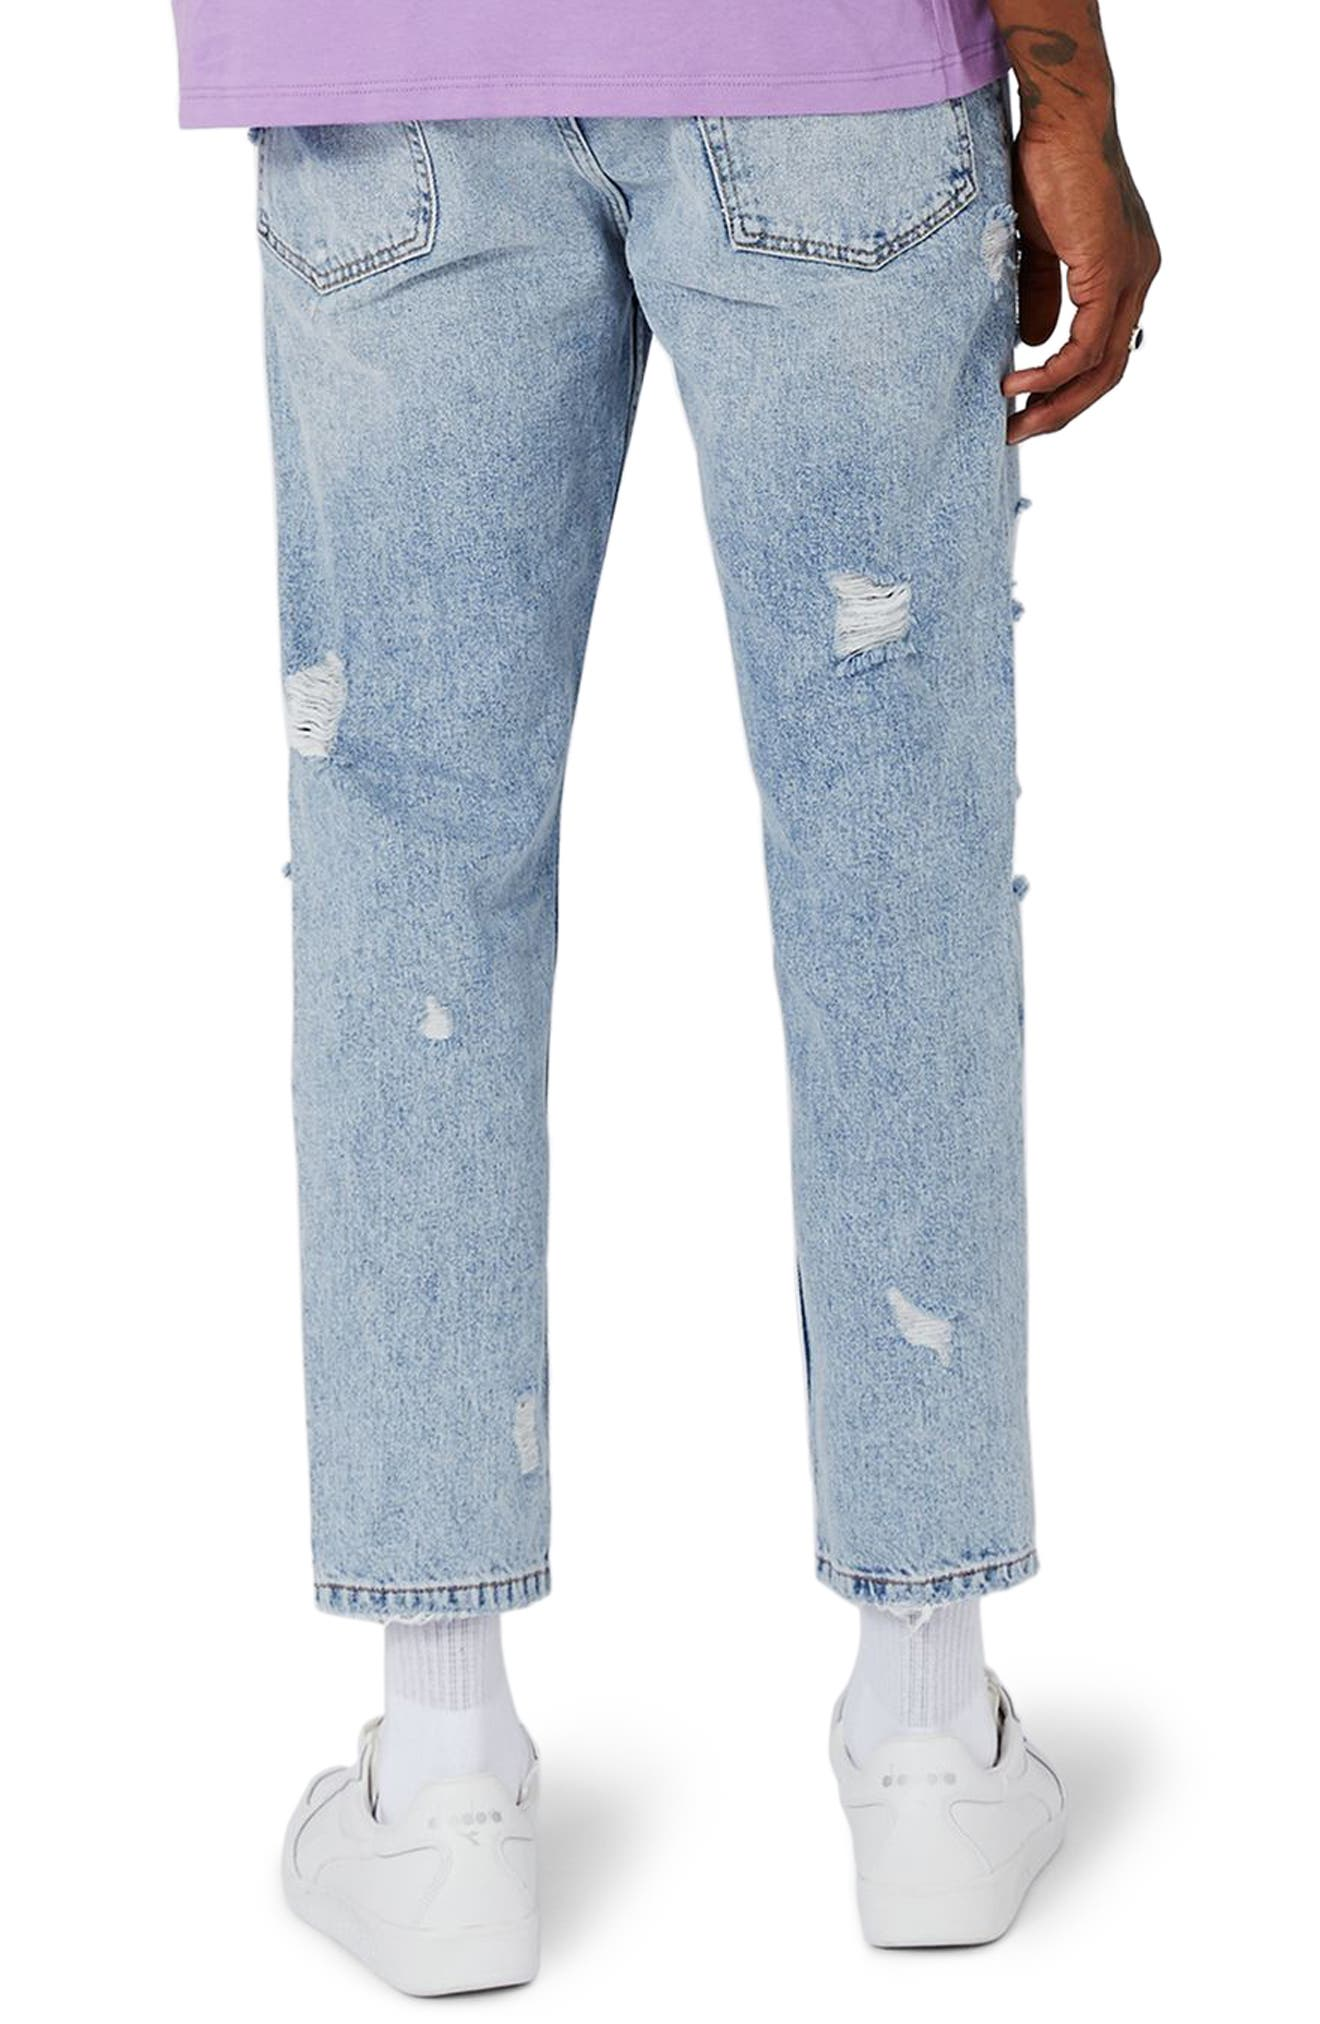 Topshop Extreme Rip Tapered Jeans,                             Alternate thumbnail 2, color,                             450